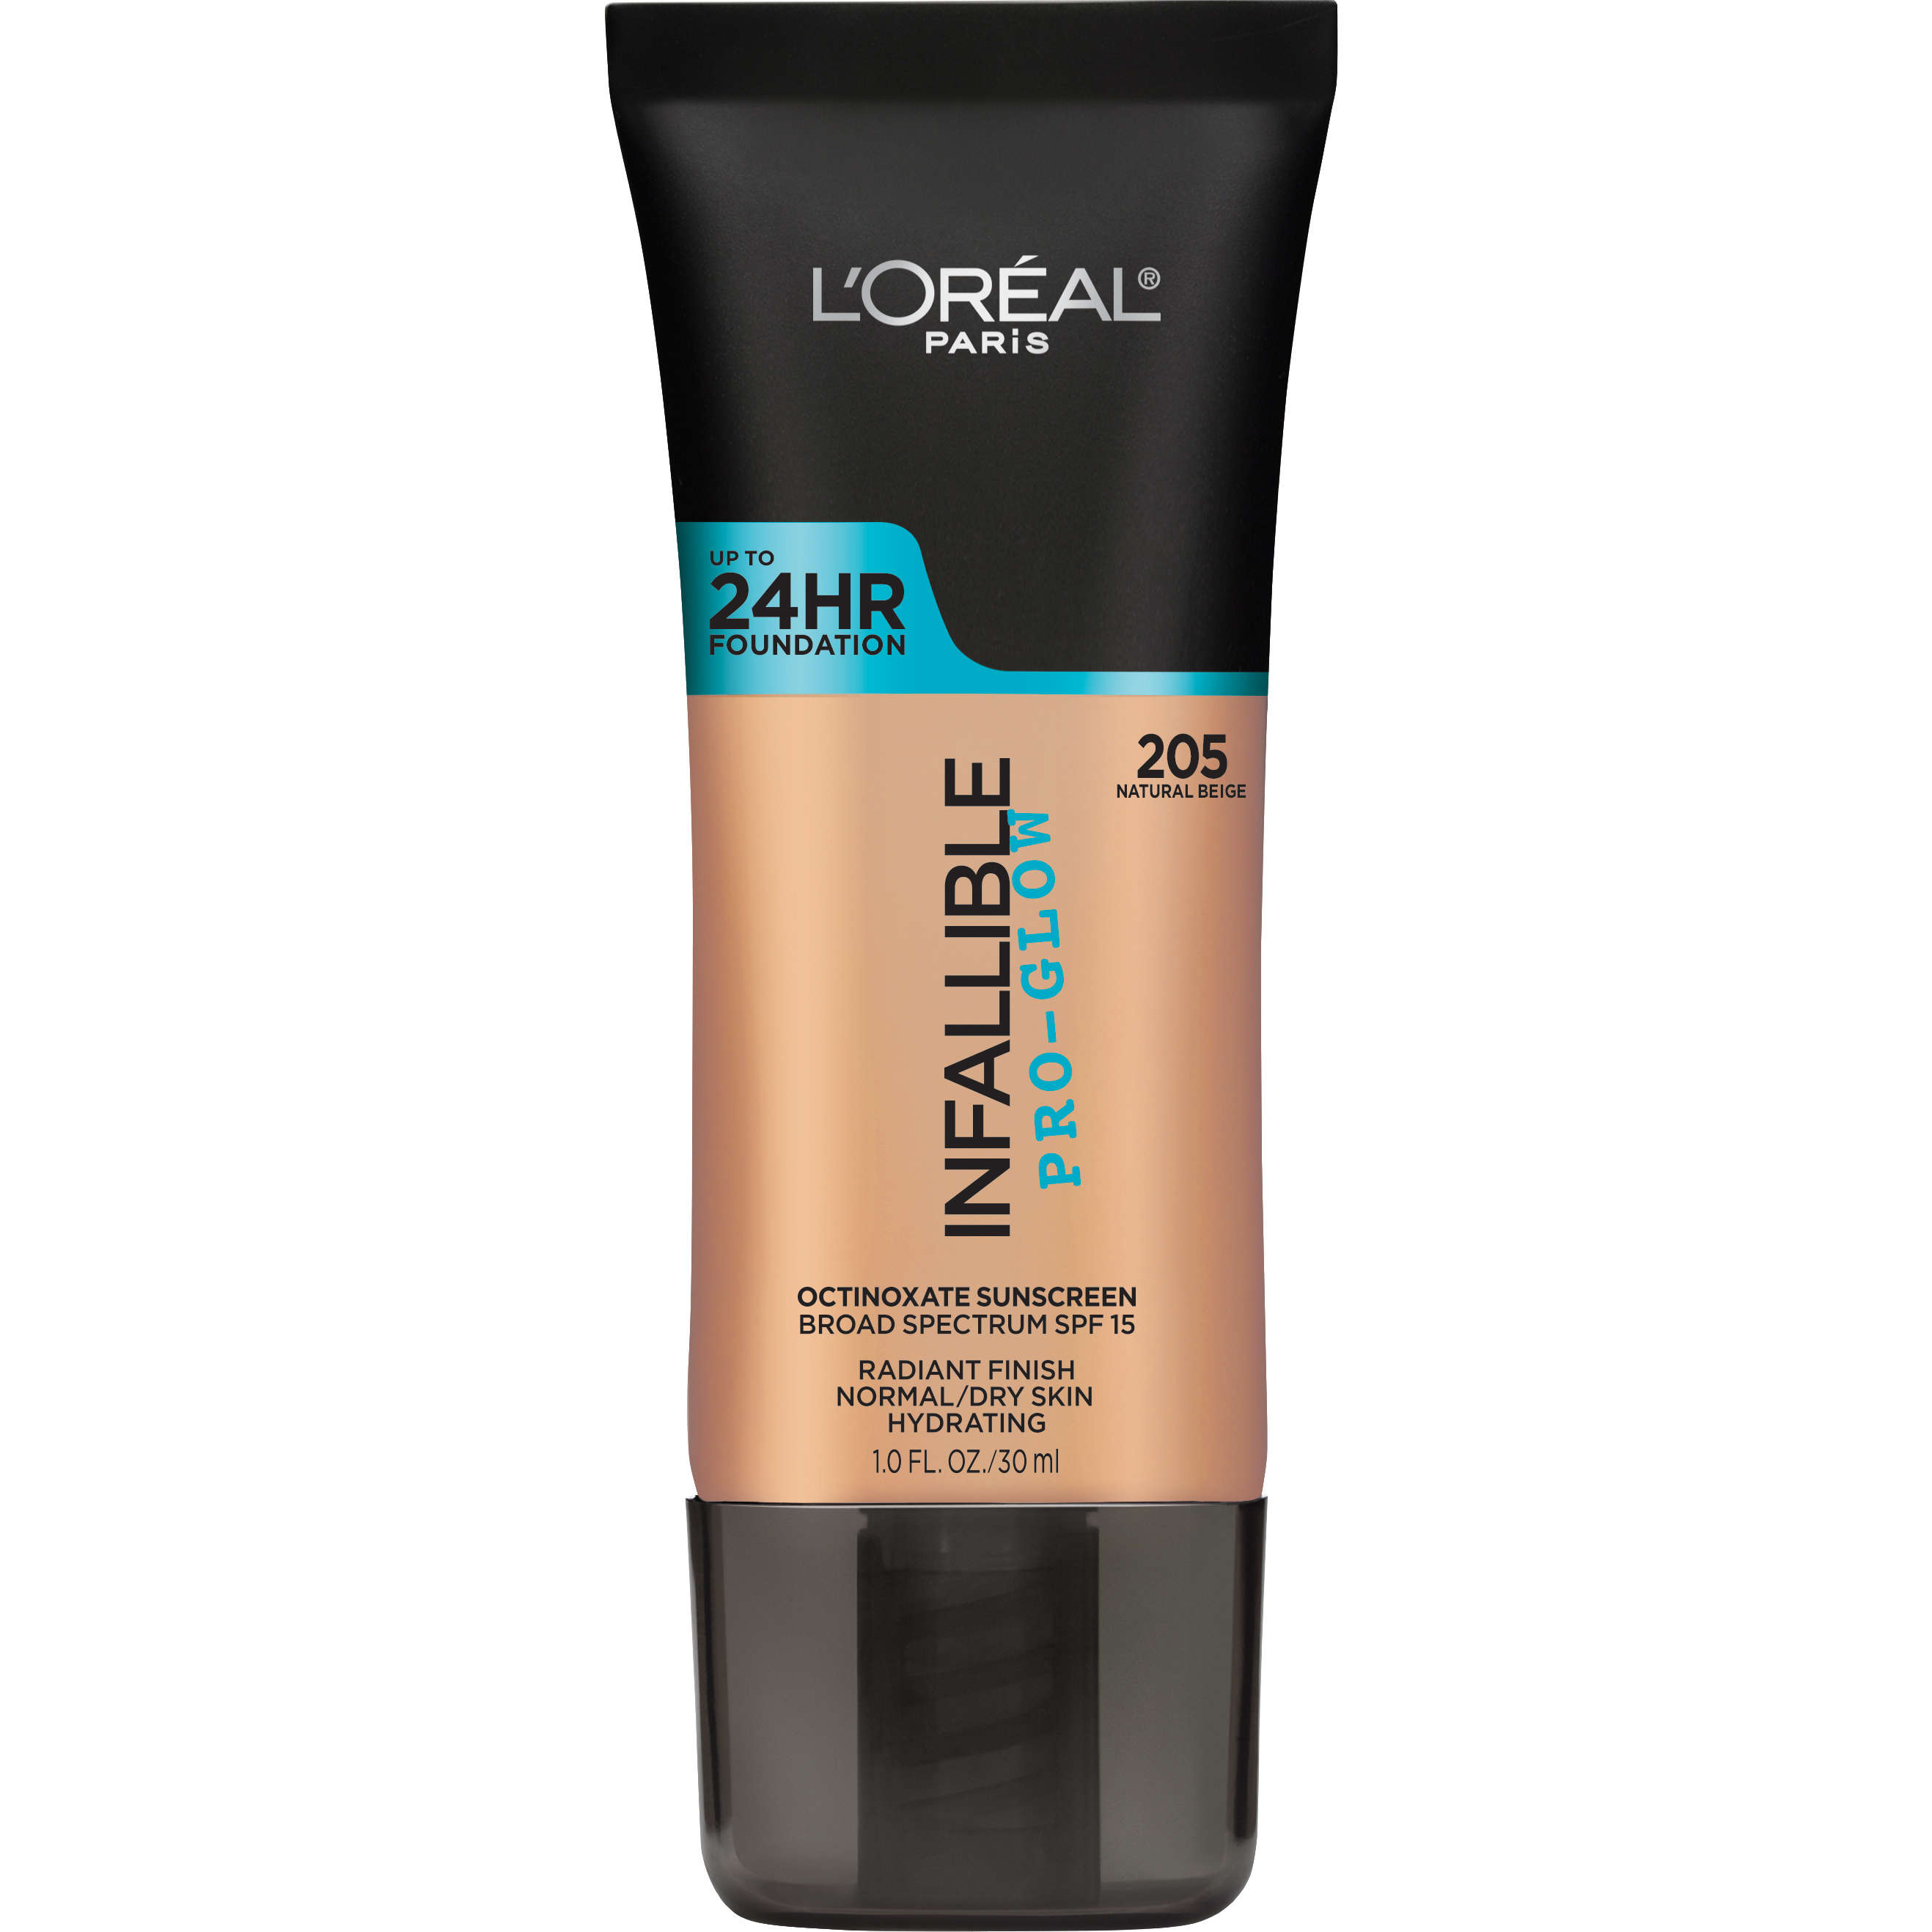 L'Oreal Paris Infallible Pro Glow Foundation, 205 Natural Beige, 1.0 oz - Walmart.com